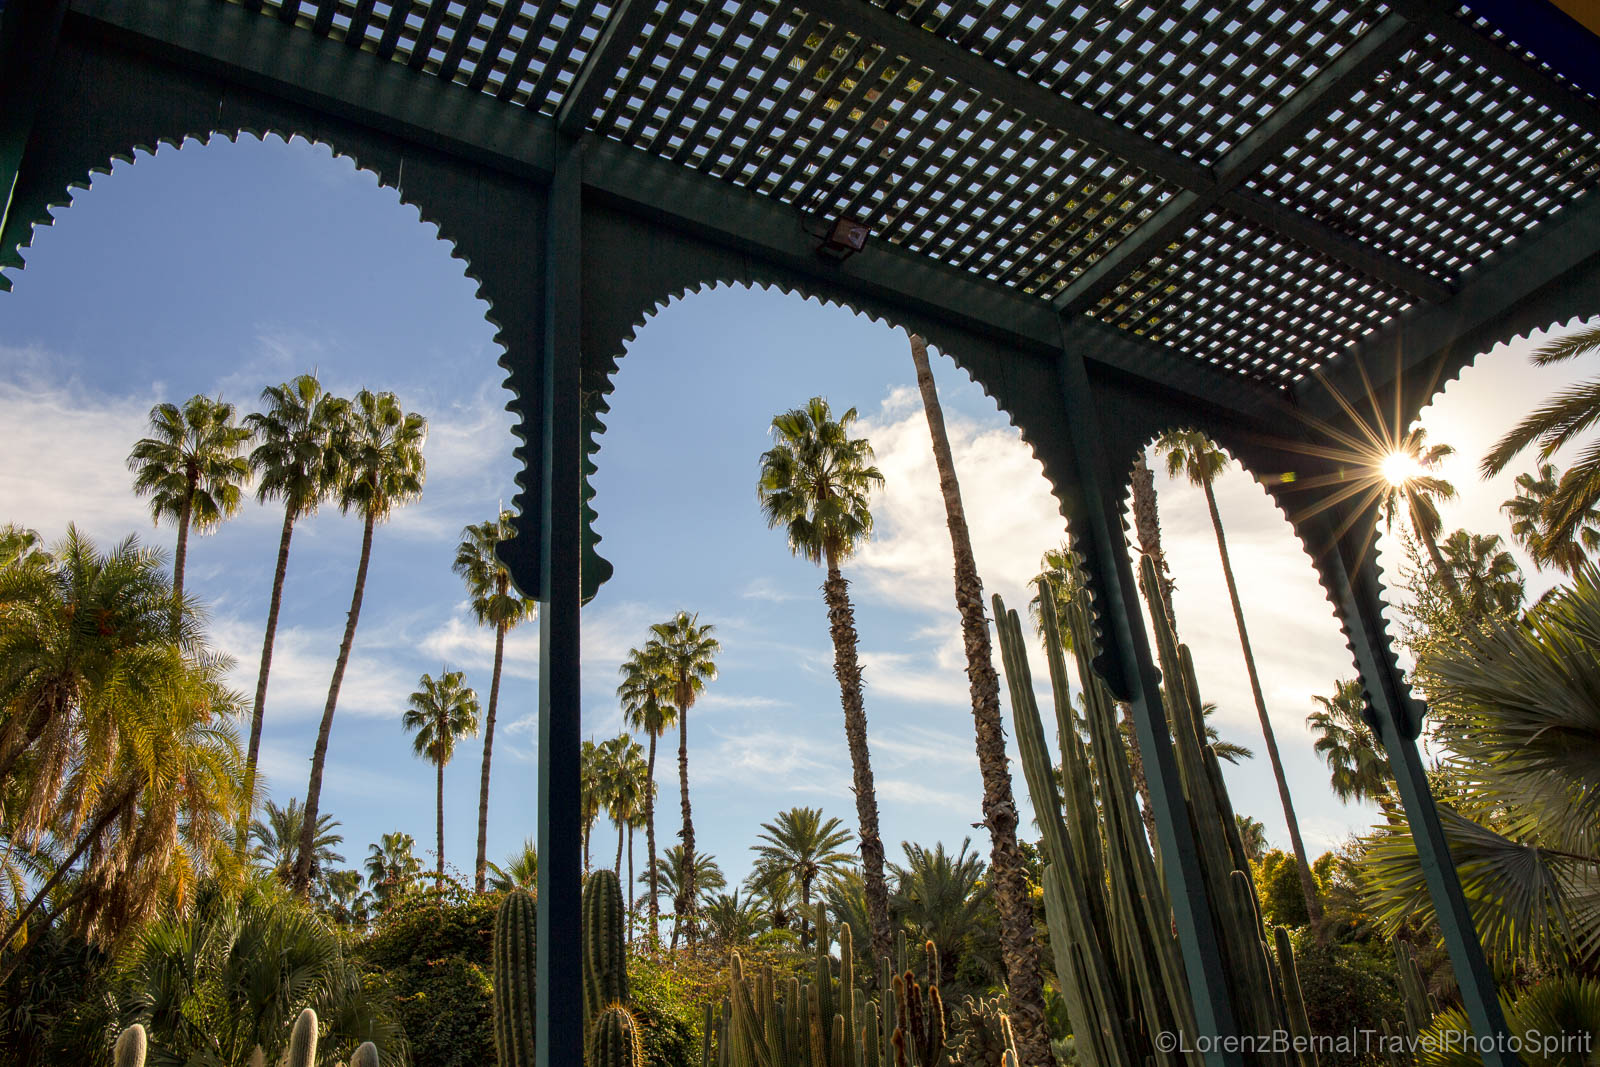 Palm trees framed in the arches of the Majorelle gardens of Marrakech, Morocco